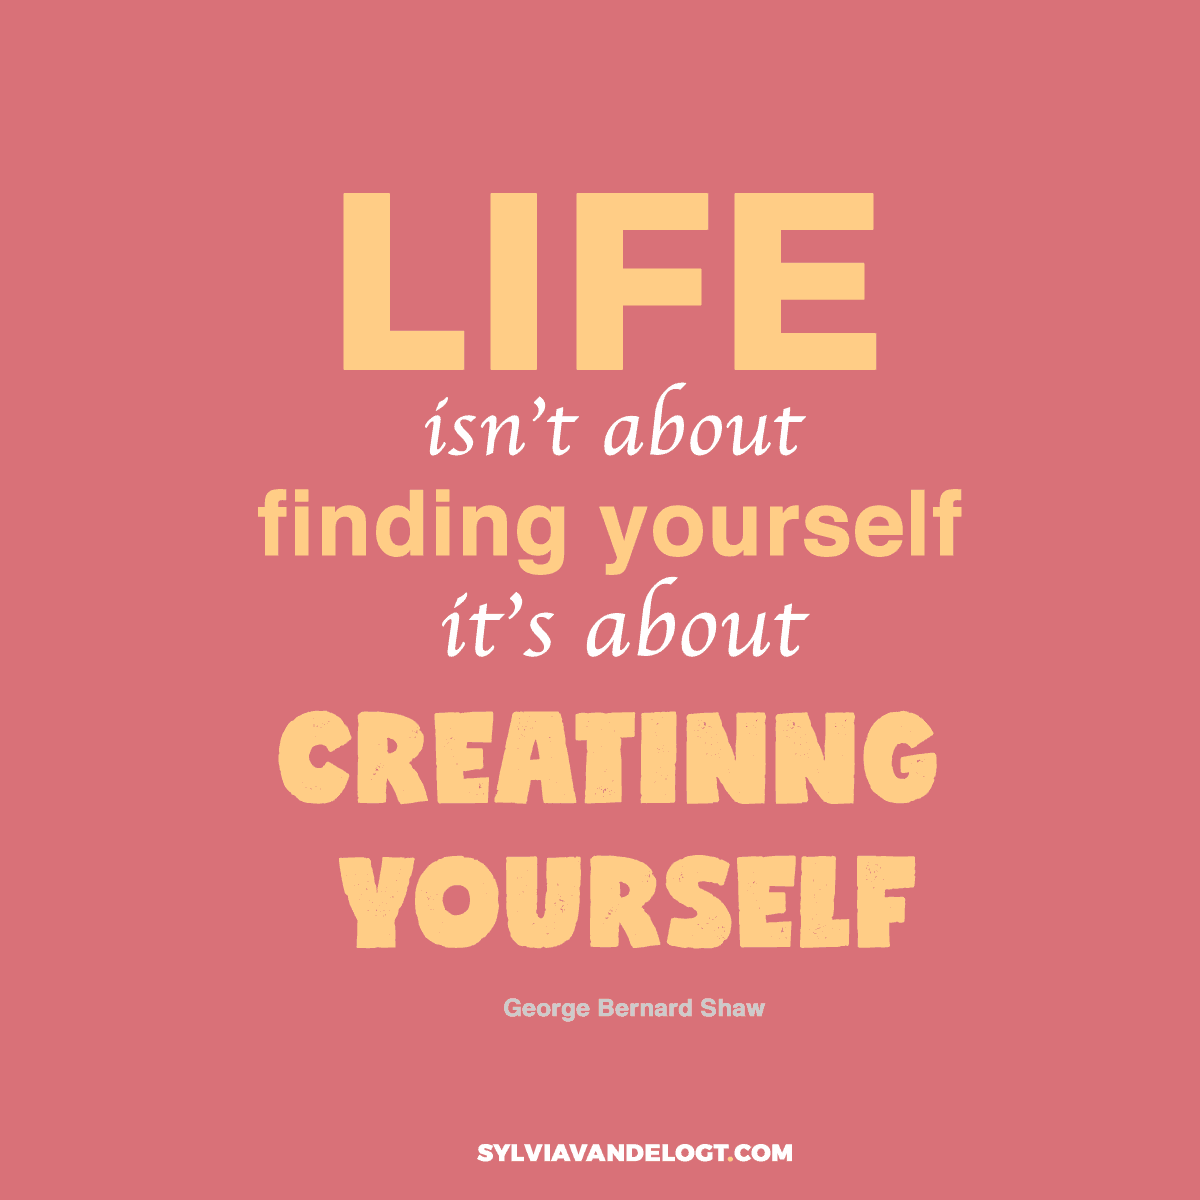 Life isn't about finding yourself, it's about creating yourself | quote | sylviavandelogt.com